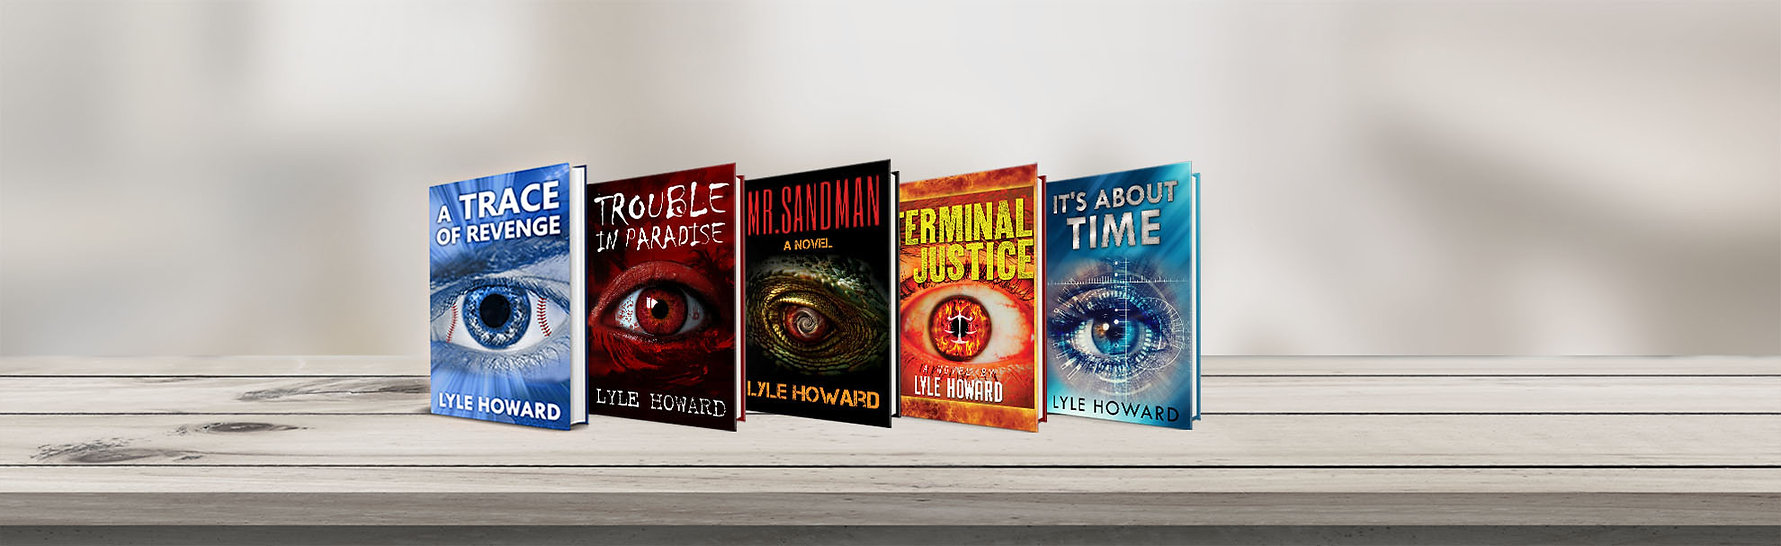 Lyle Howard books banner books page all